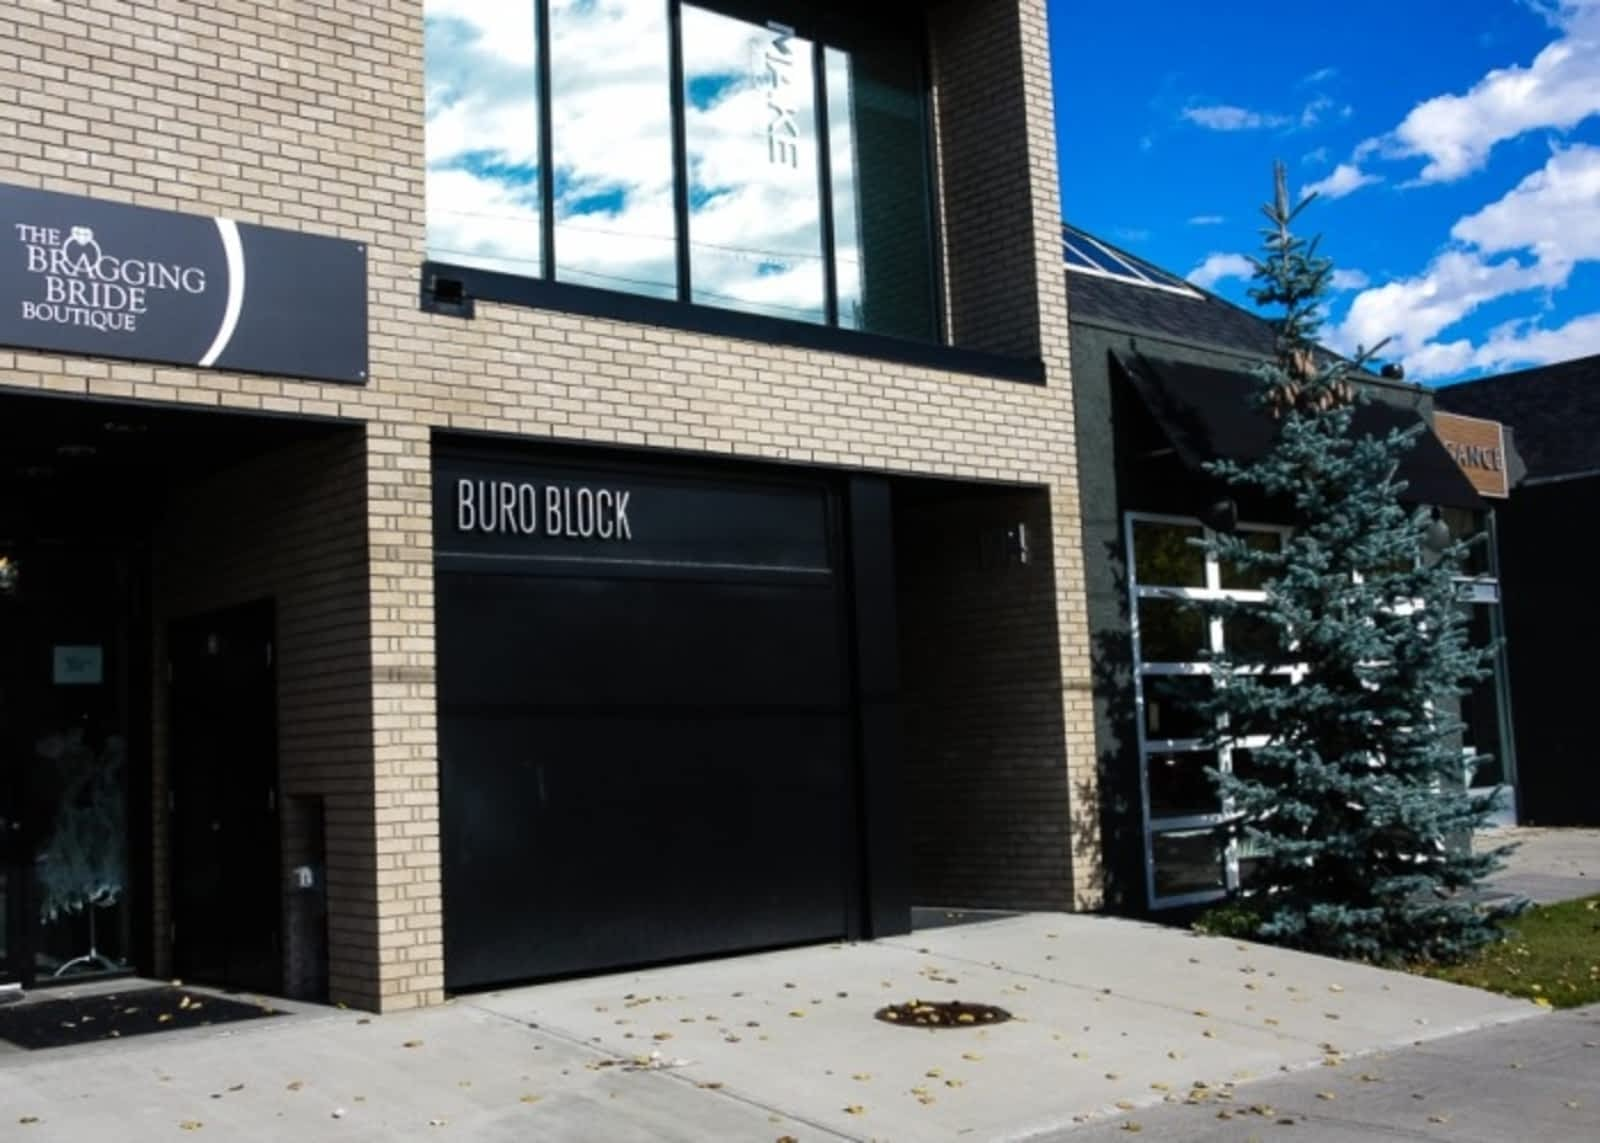 bc181e81c004 Bragging Bride Boutique - Opening Hours - 1301 10 Ave Sw Floor 2, Calgary,  AB